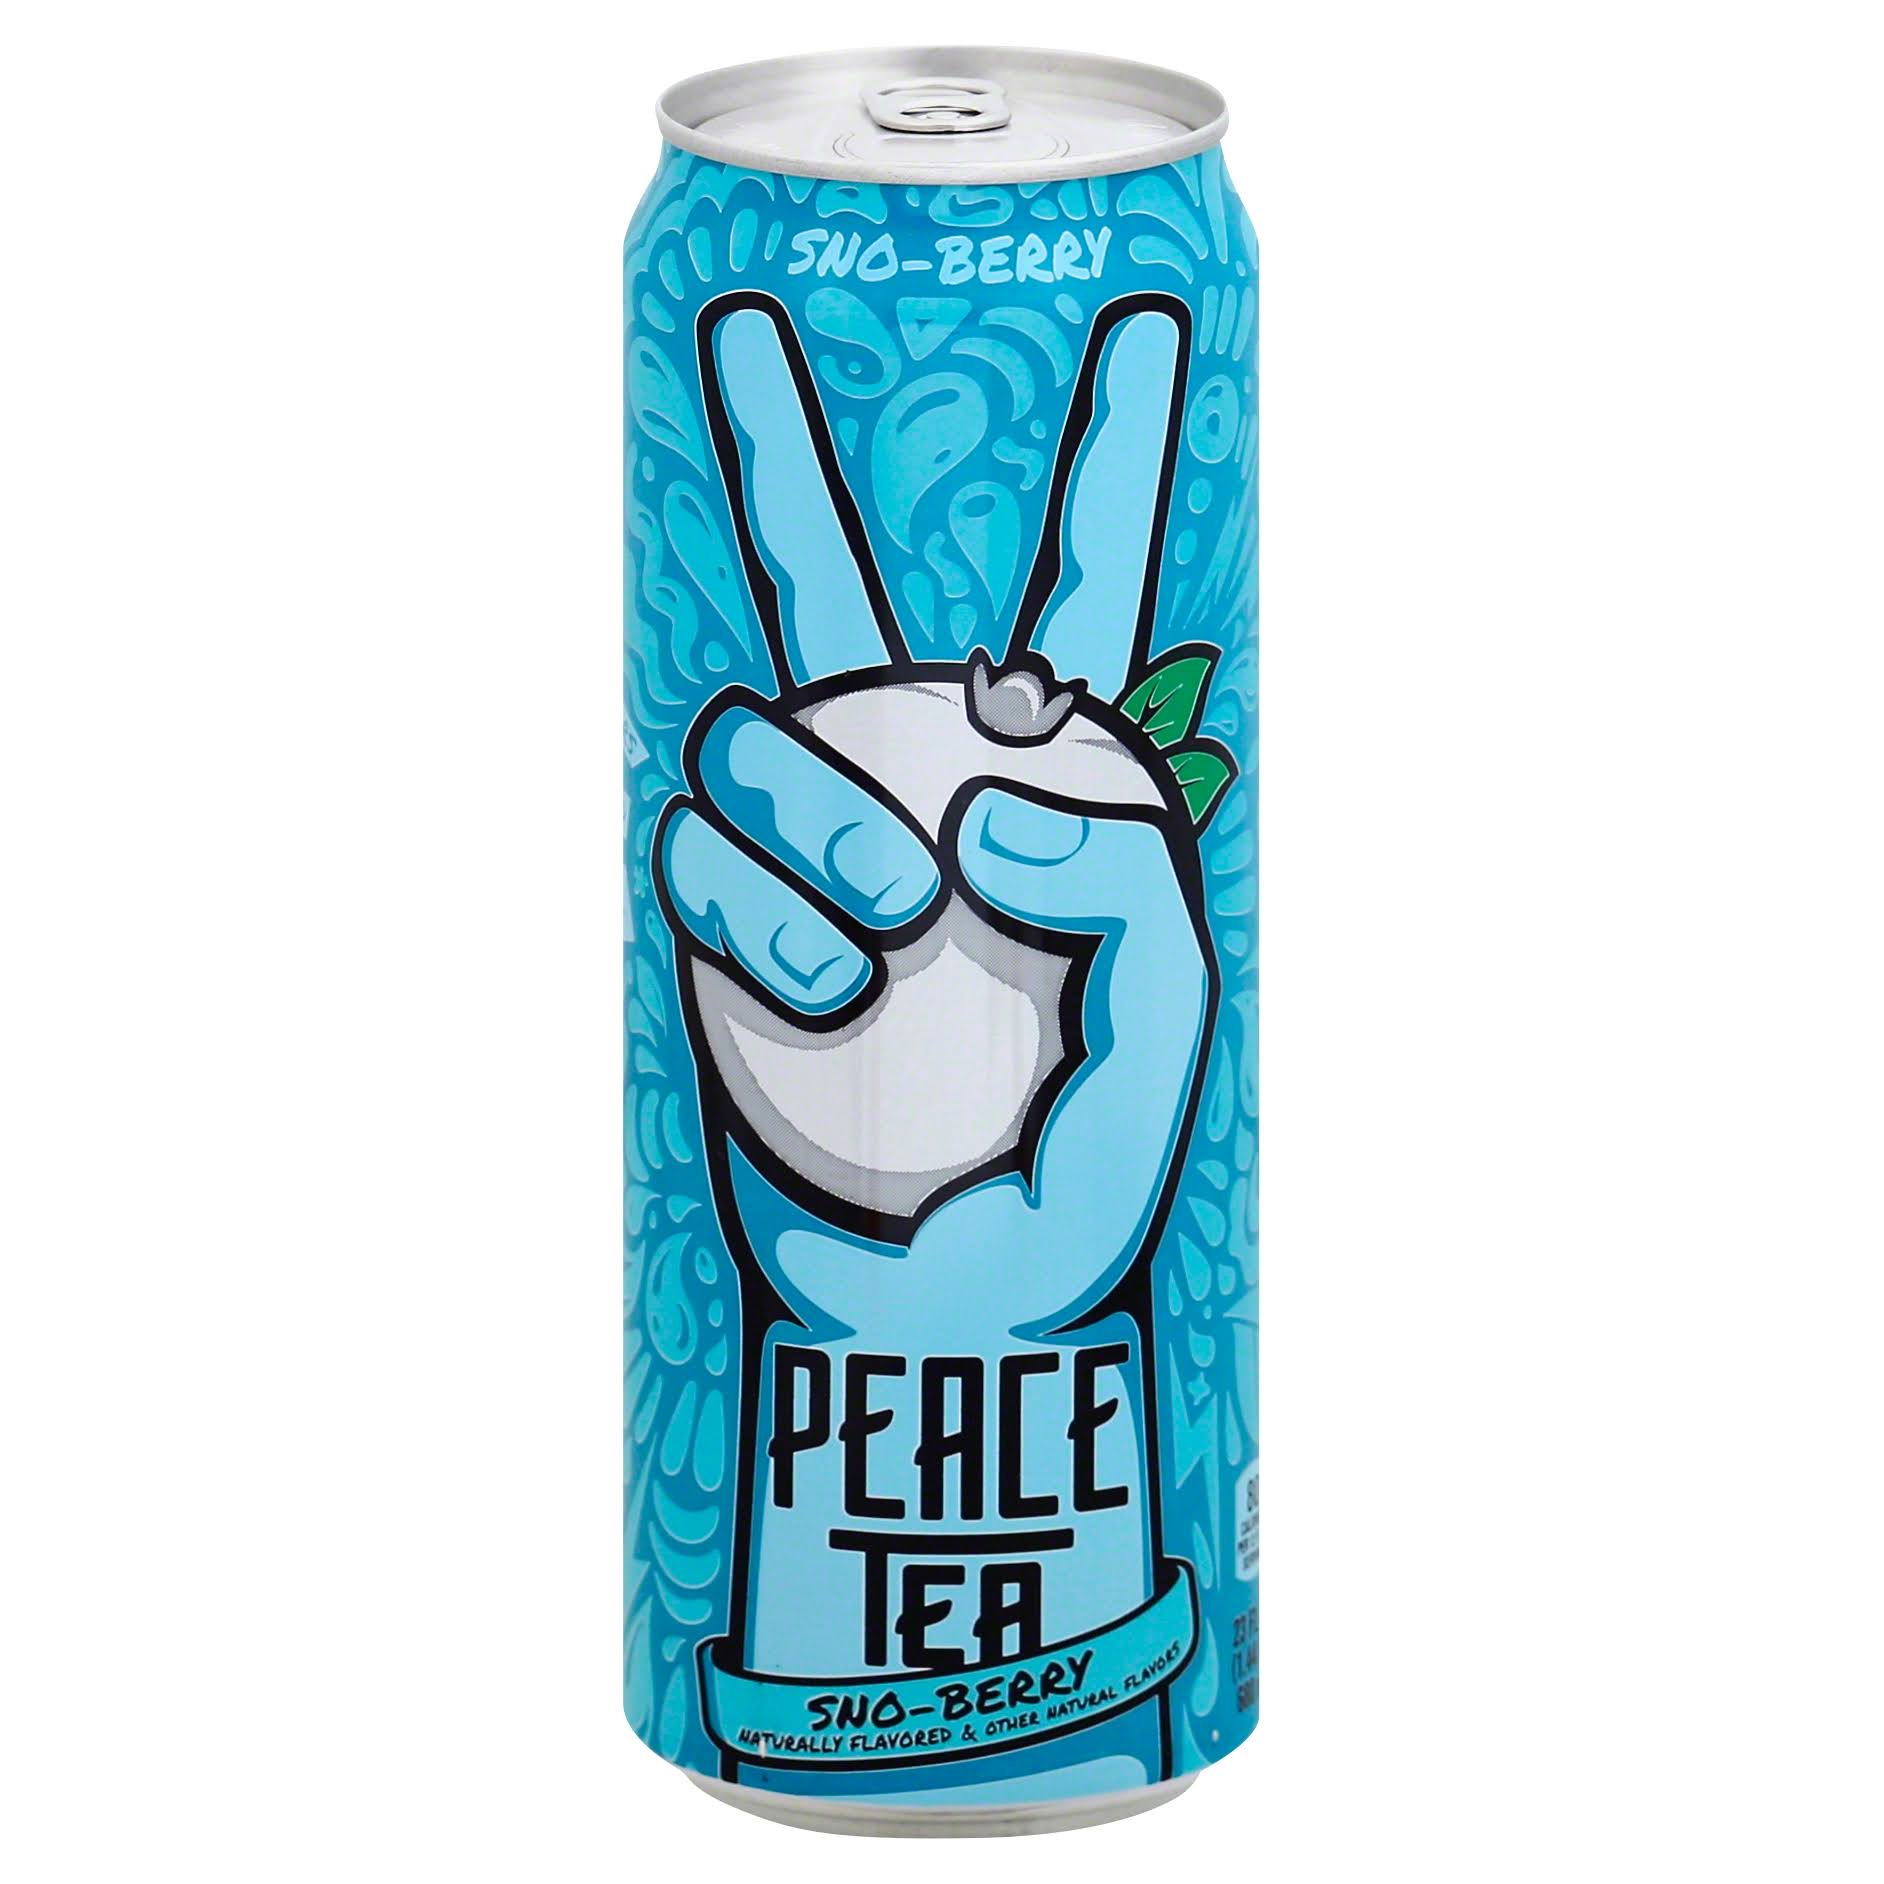 Peace Tea Tea, Sno-Berry - 23 fl oz